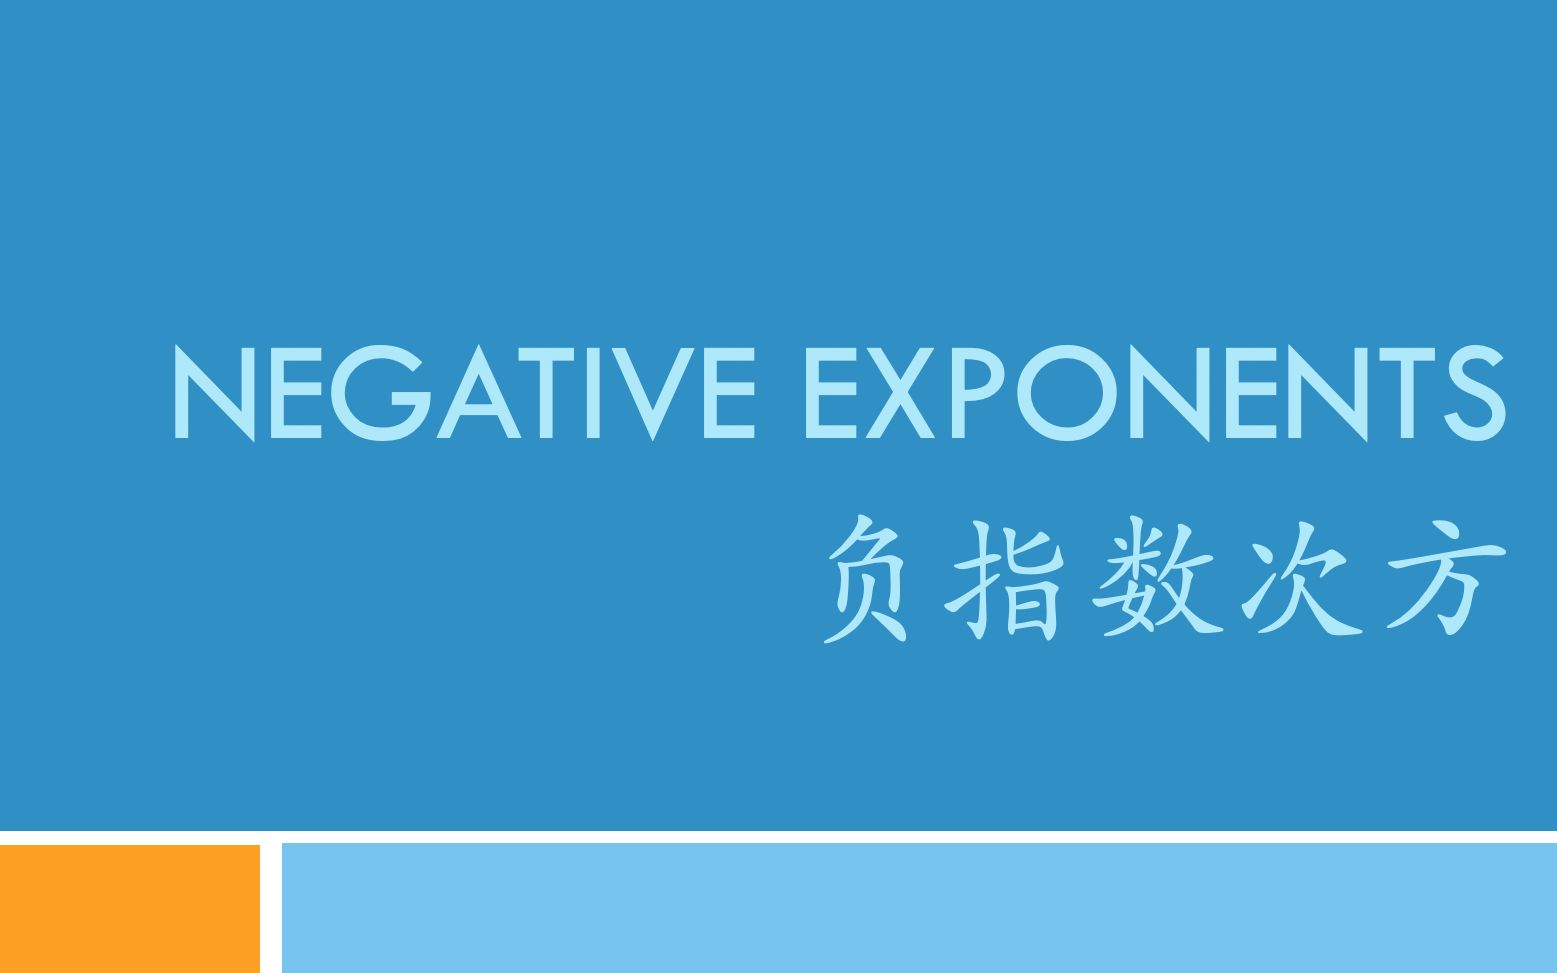 G81507 NEGATIVE EXPONENT负指数幂